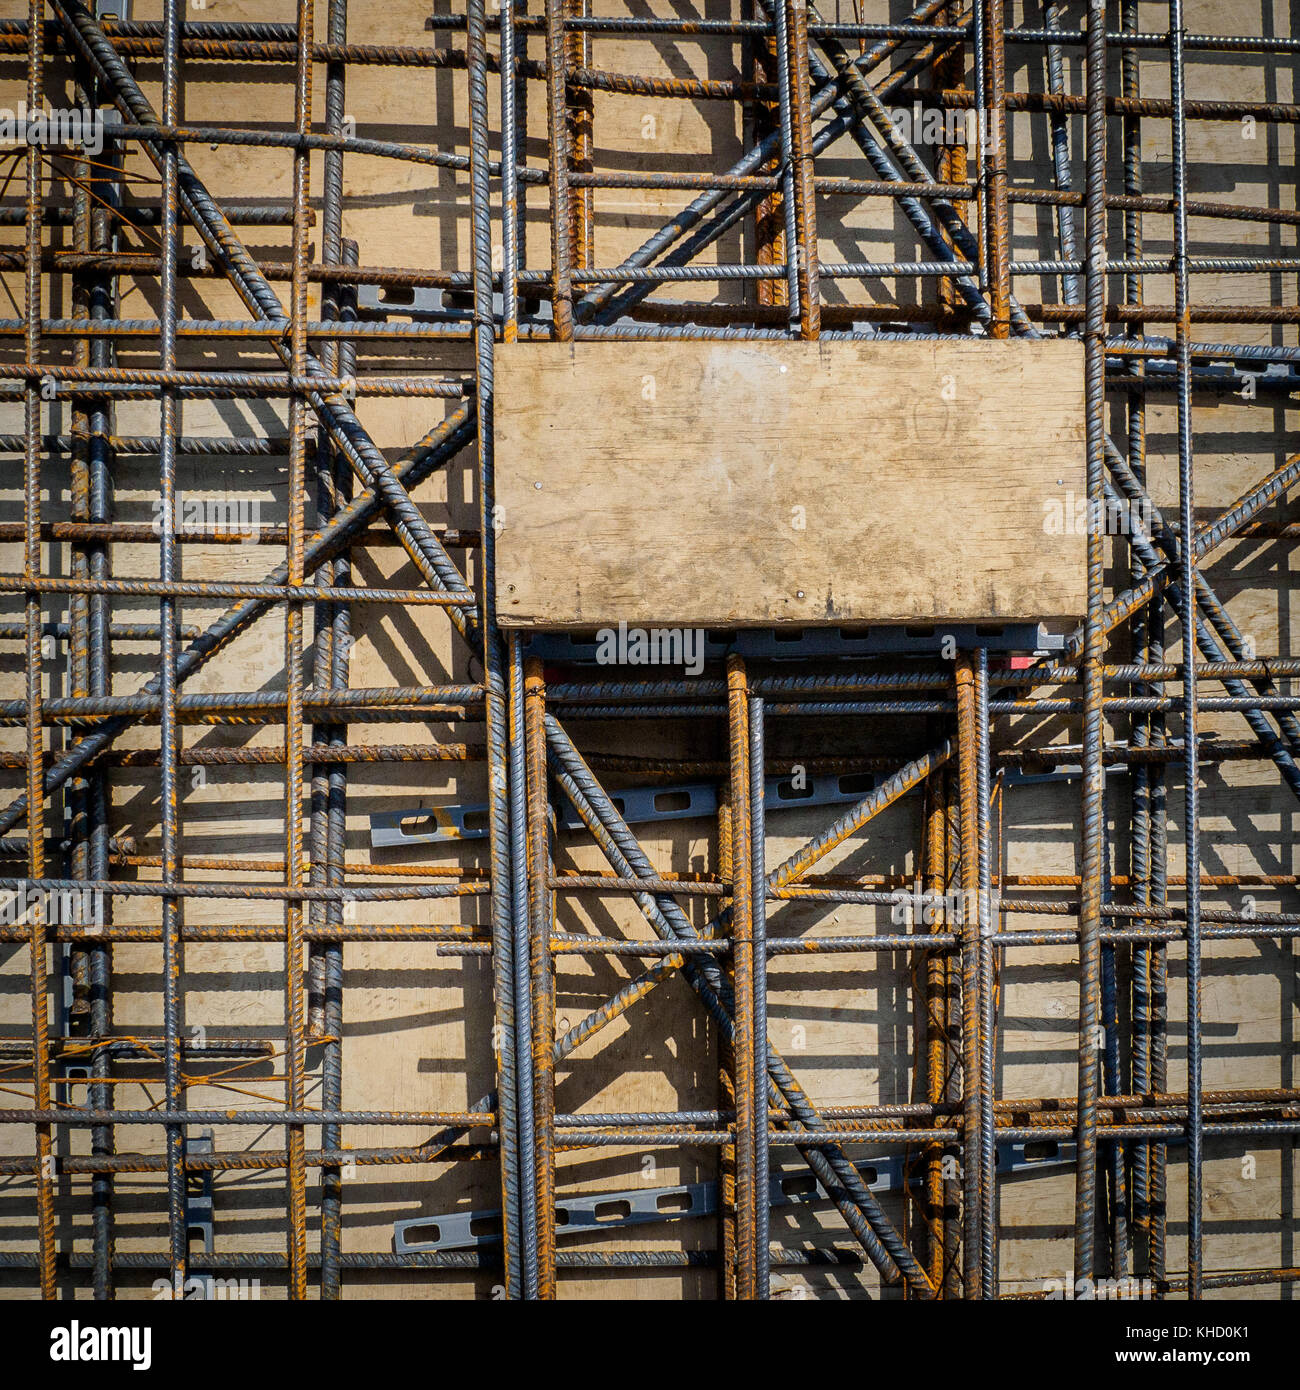 reinforcement Cage) Stockfotos & (reinforcement Cage) Bilder ...